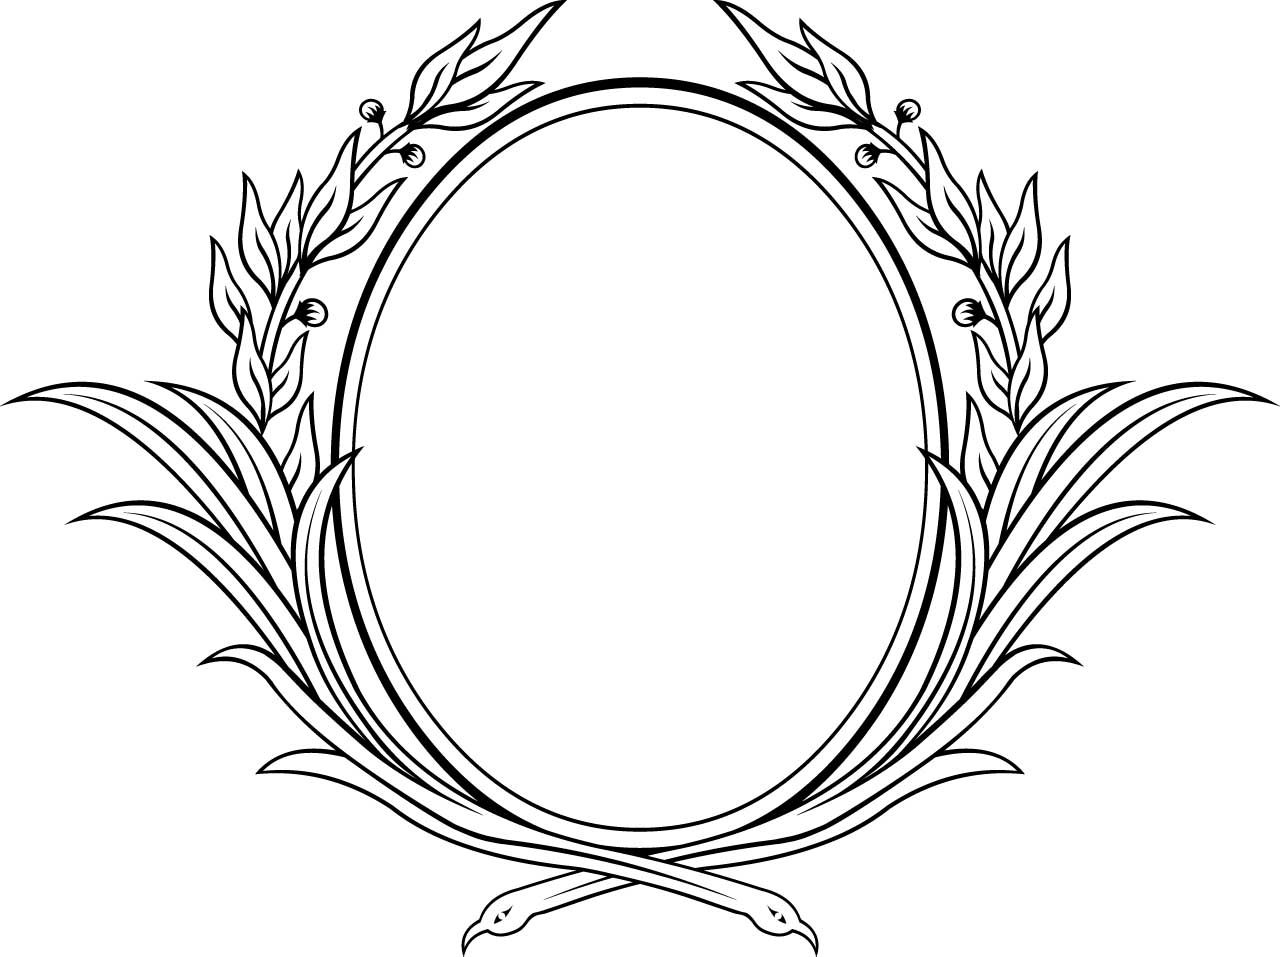 decorative oval floral vector frame - Decorative Frames